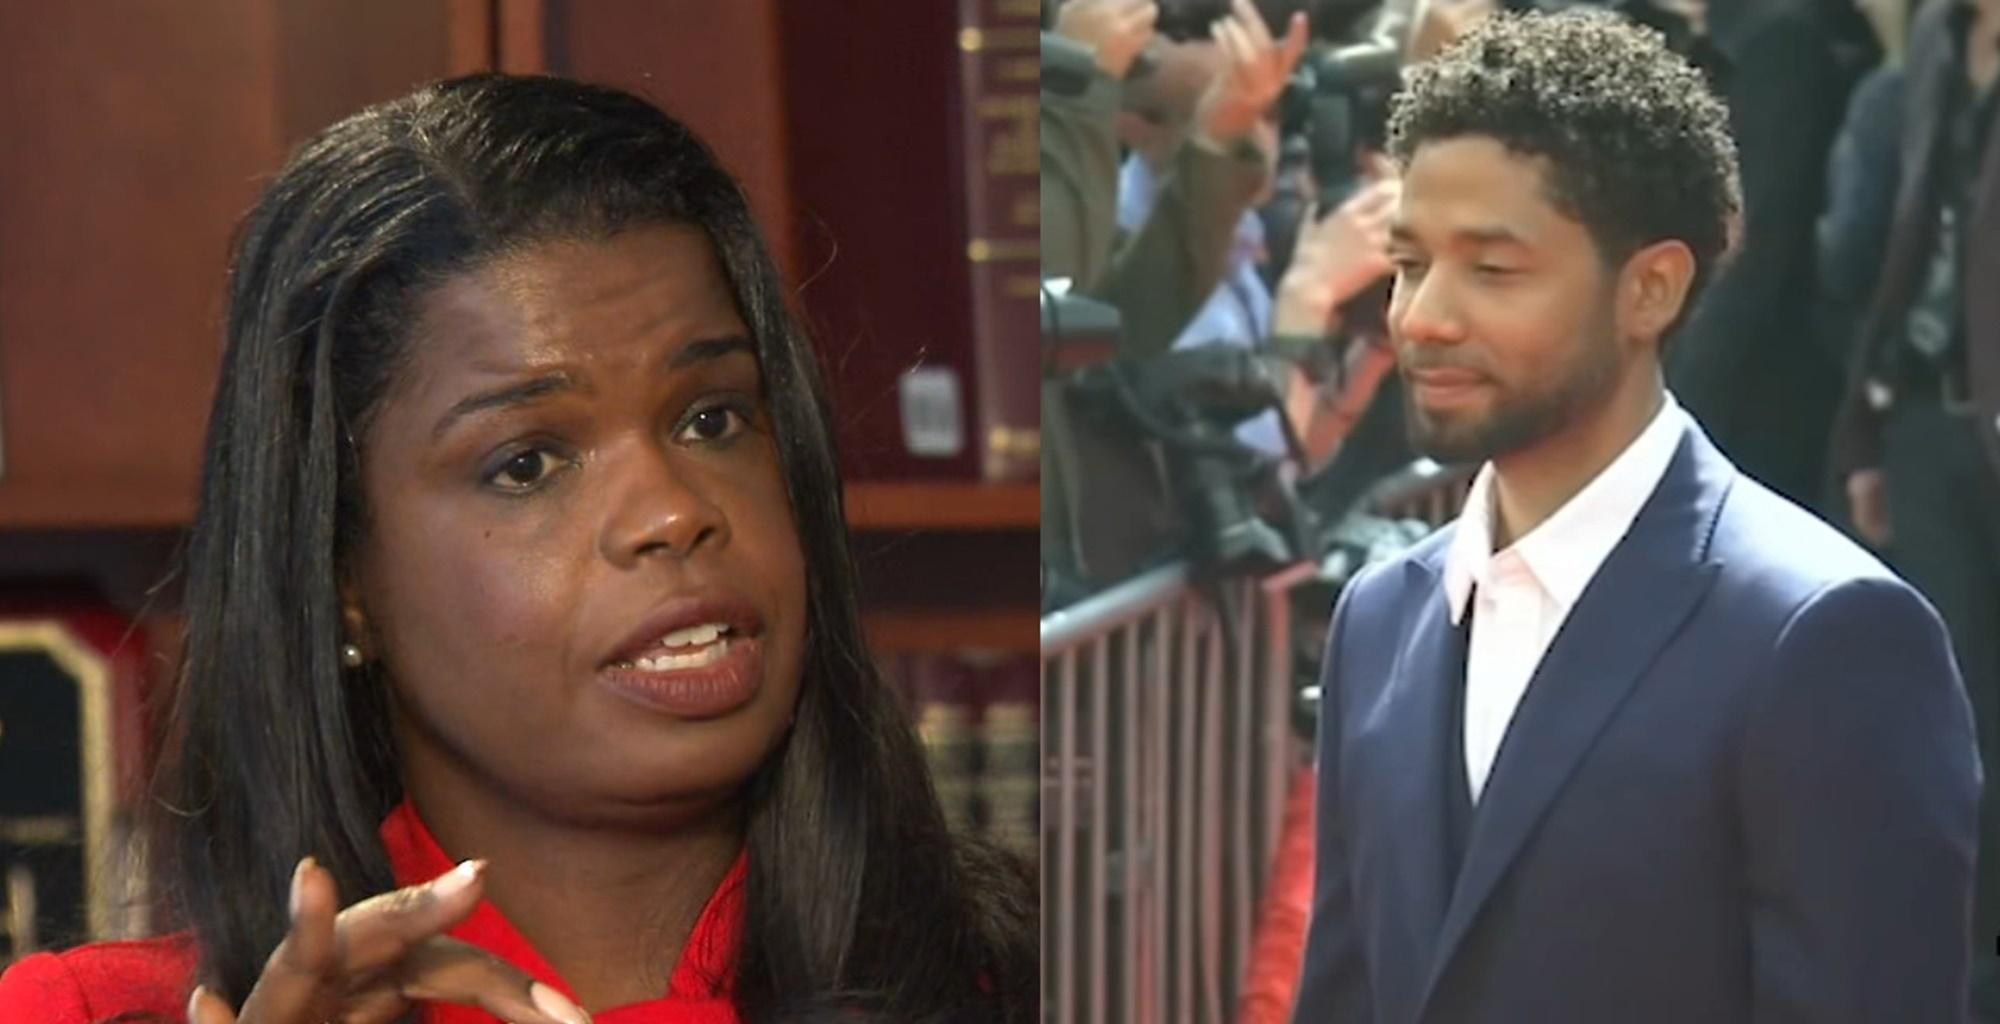 Jussie Smollett's Case Is Getting Looked At By The FBI -- Can Kim Foxx Find A Way Out?